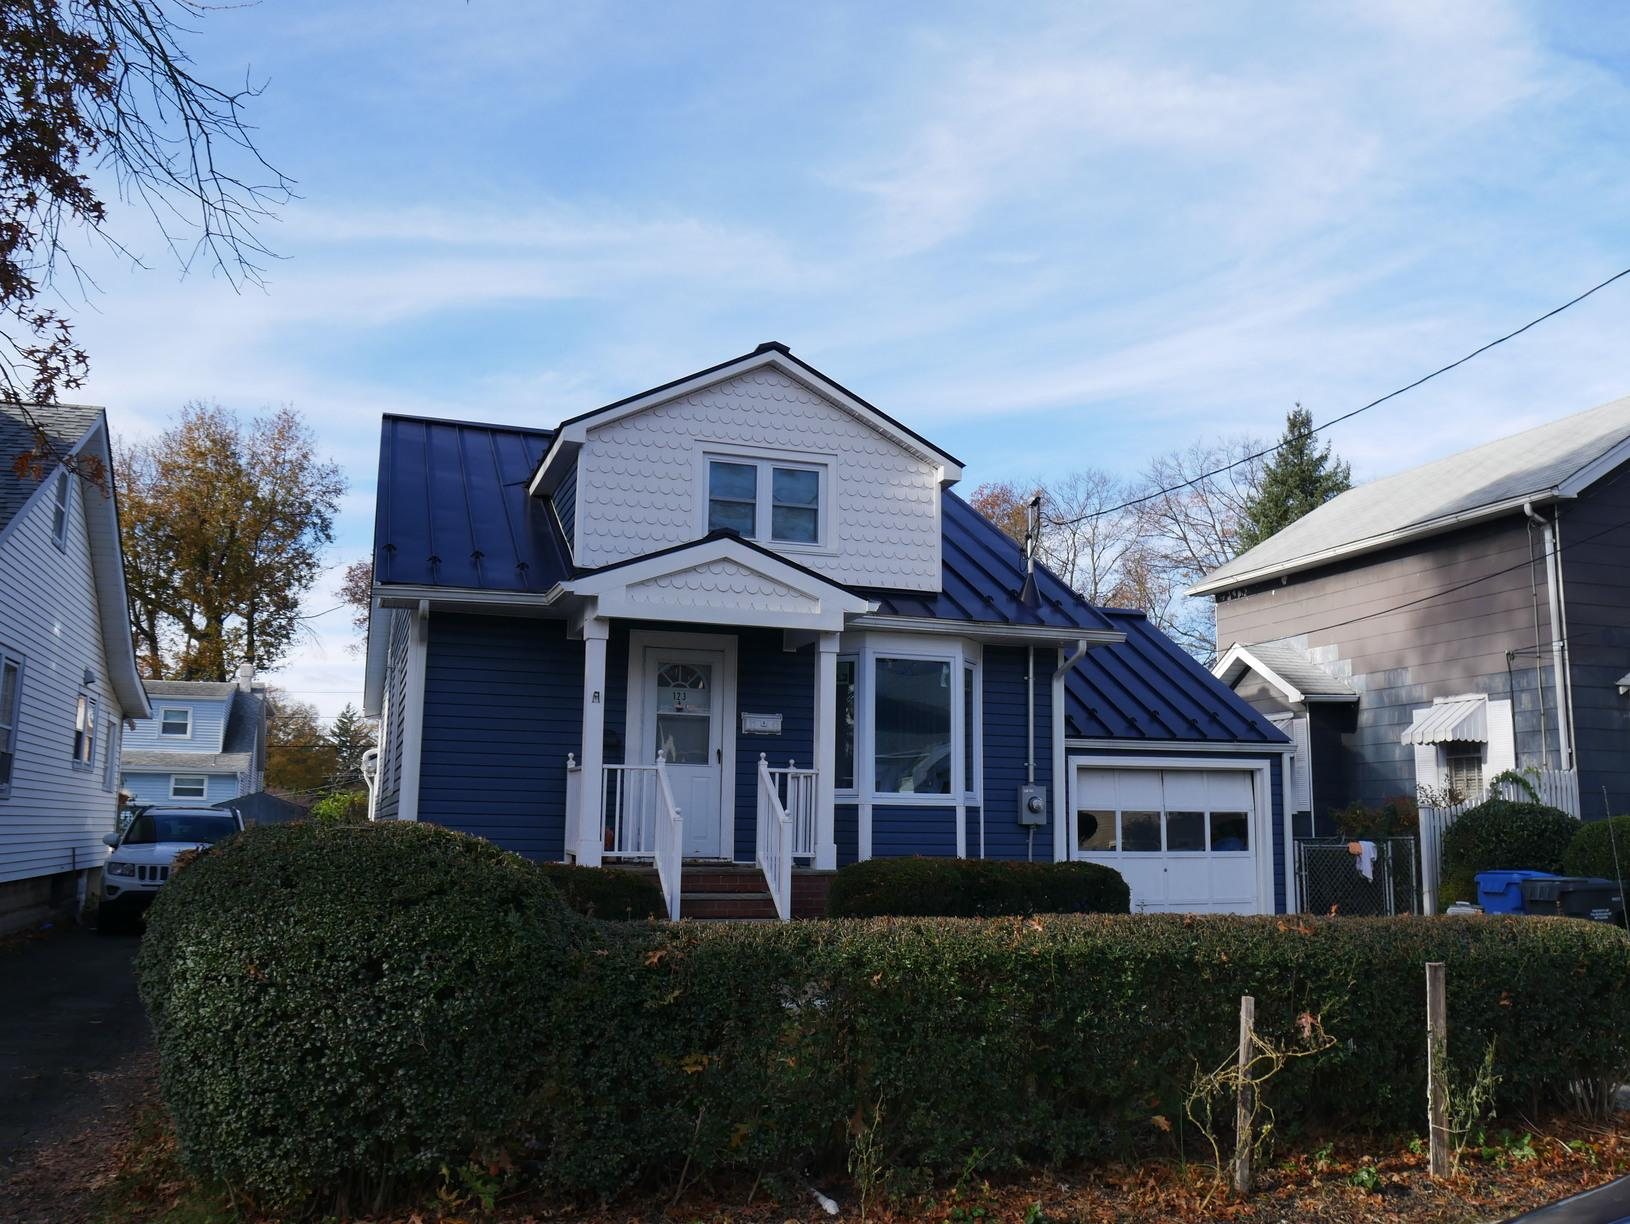 Replacing Asphalt Shingles with Standing Seam Metal on Cape Cod-Style Home in Metuchen, NJ - After Photo